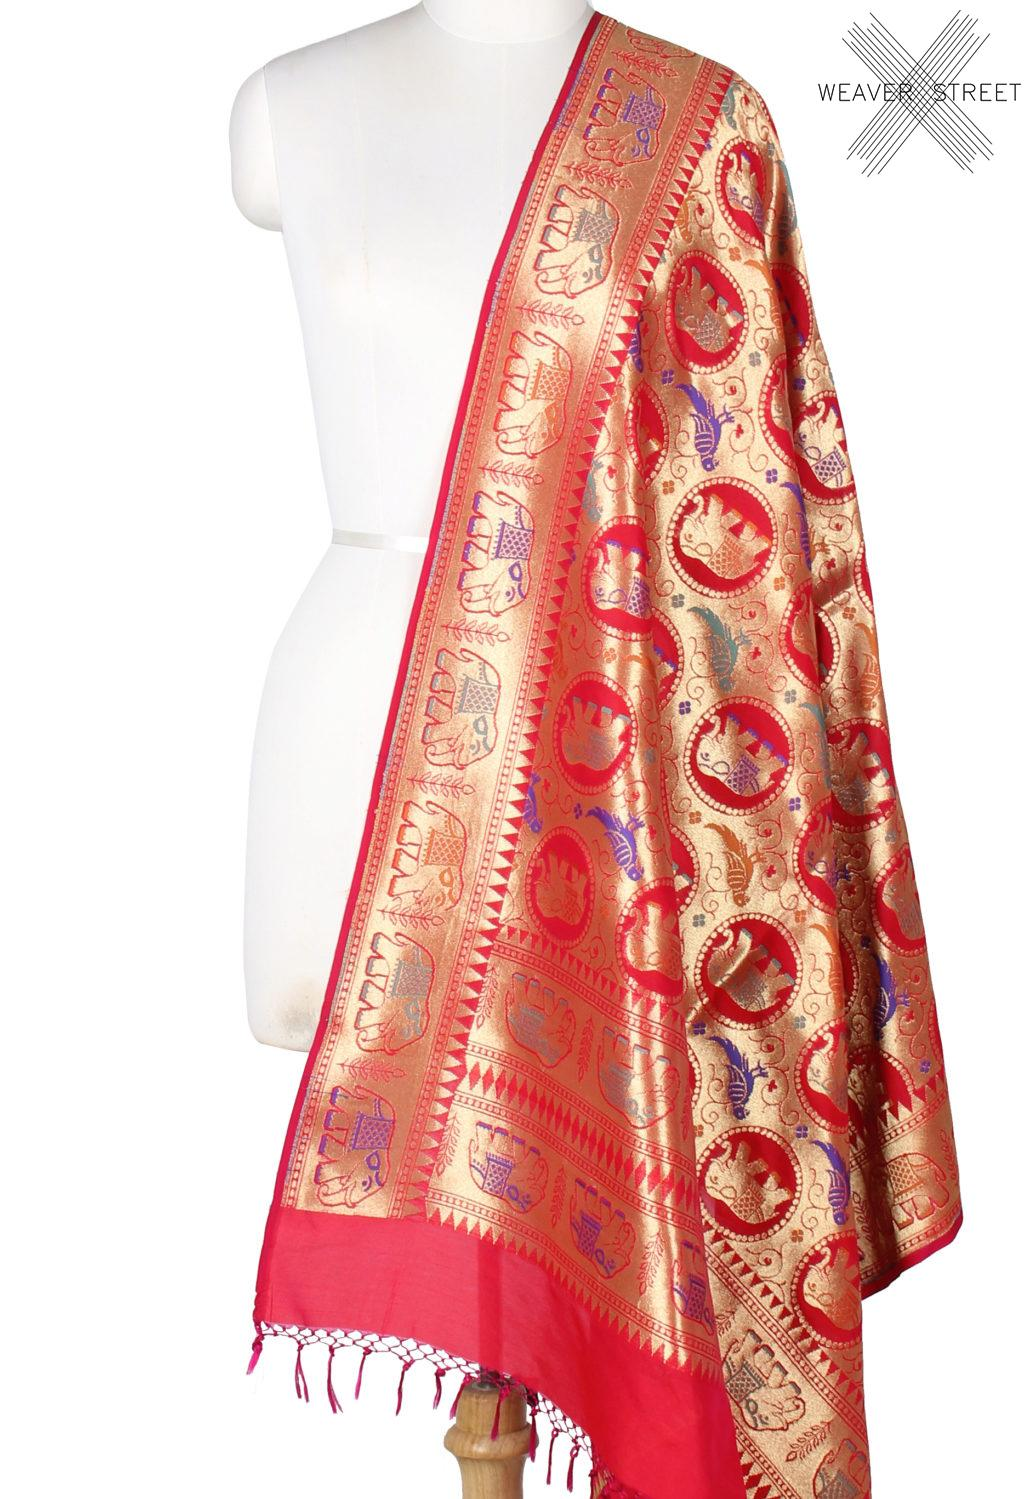 Red art silk Banarasi dupatta with meenedar elephant and parrot motifs (1) Main